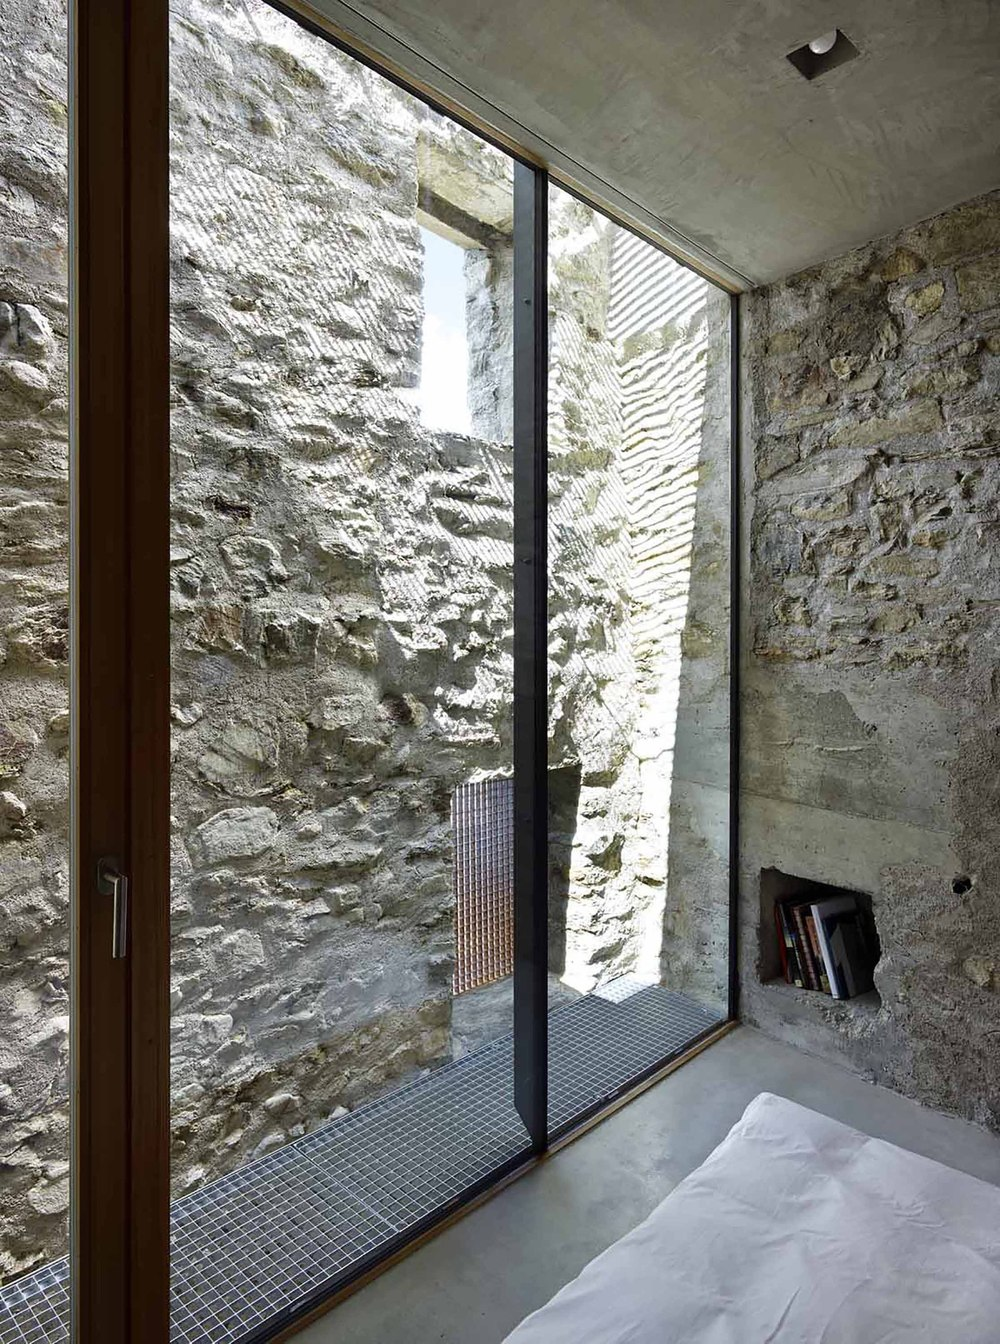 543dd5a6c07a80762d00024b_stone-house-transformation-in-scaiano-wespi-de-meuron-romeo-architects_1430_cf030063.jpg